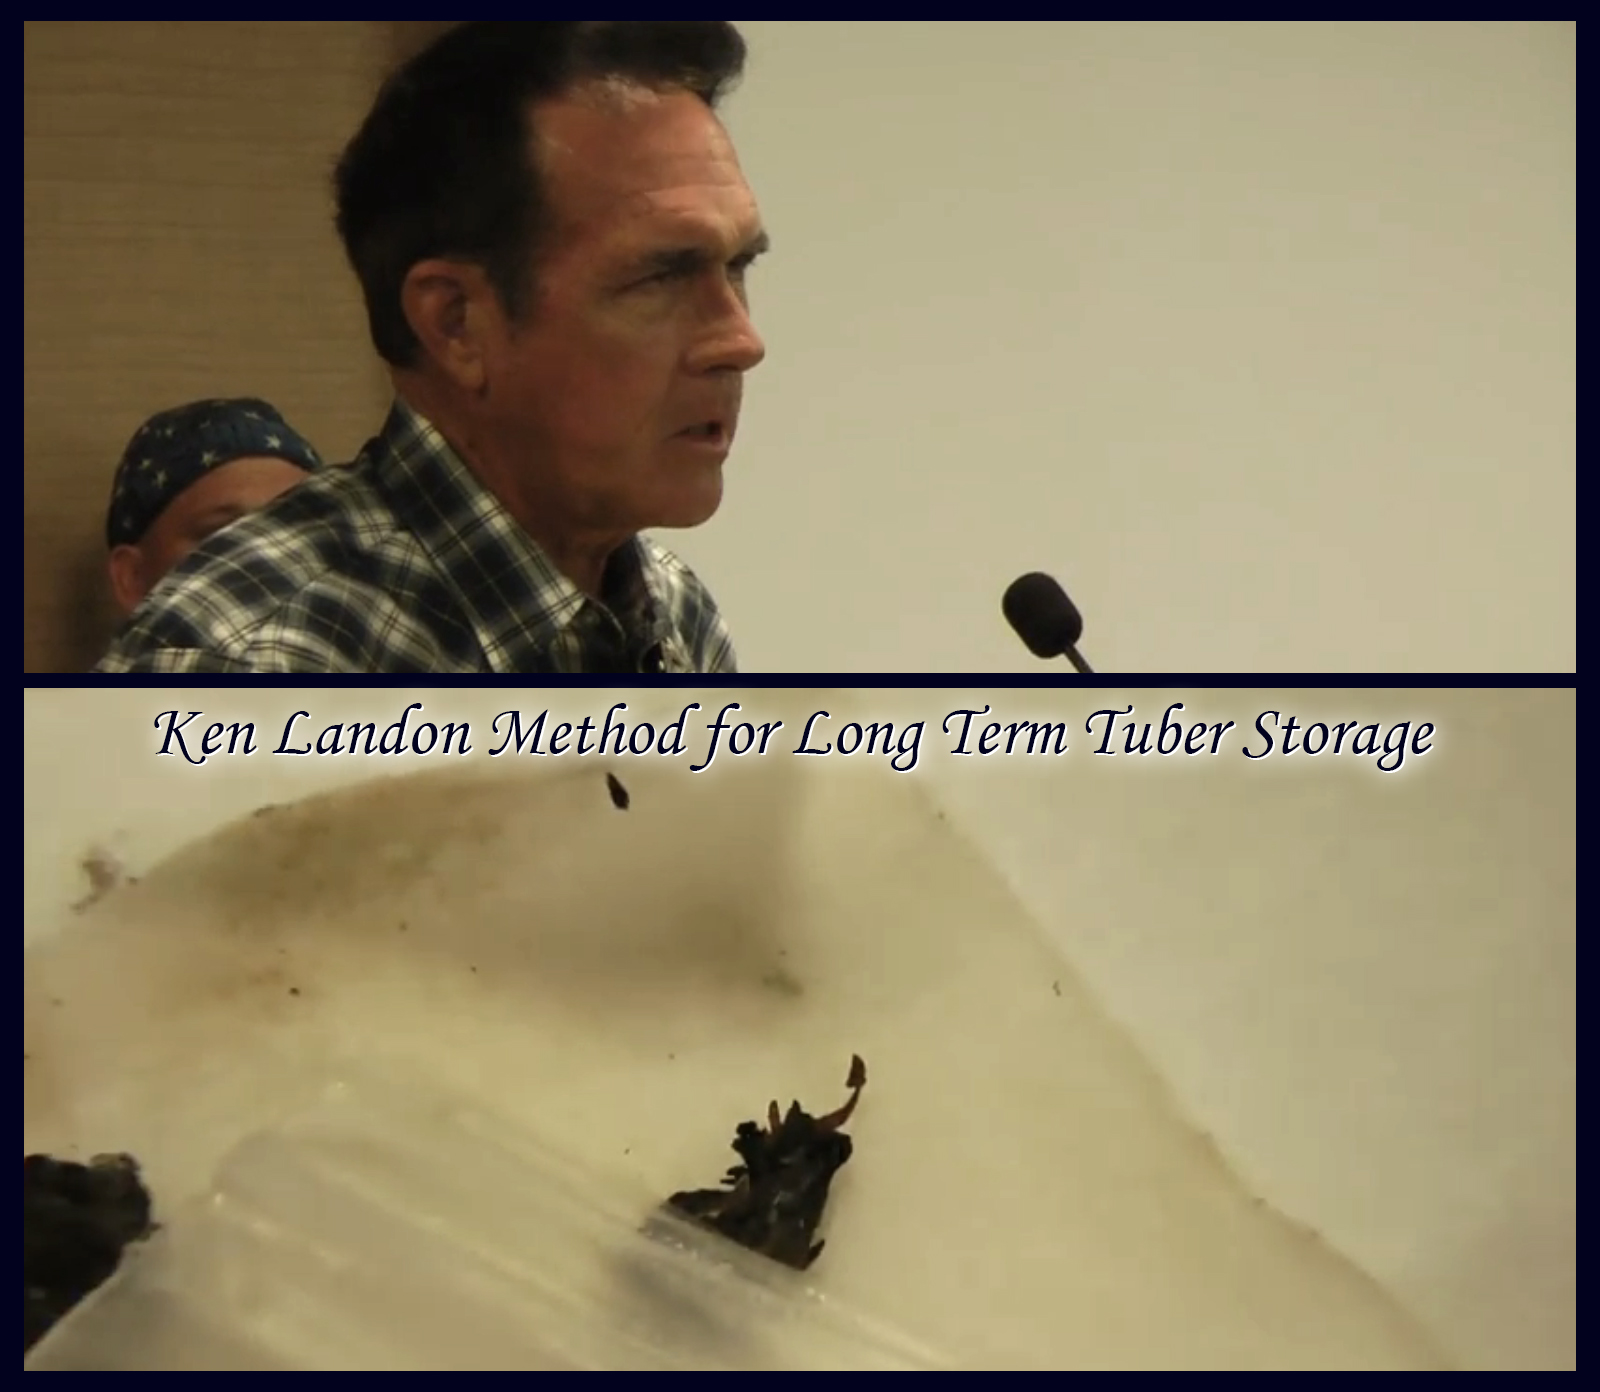 Ken Landon Method for Long Term Tuber Storage